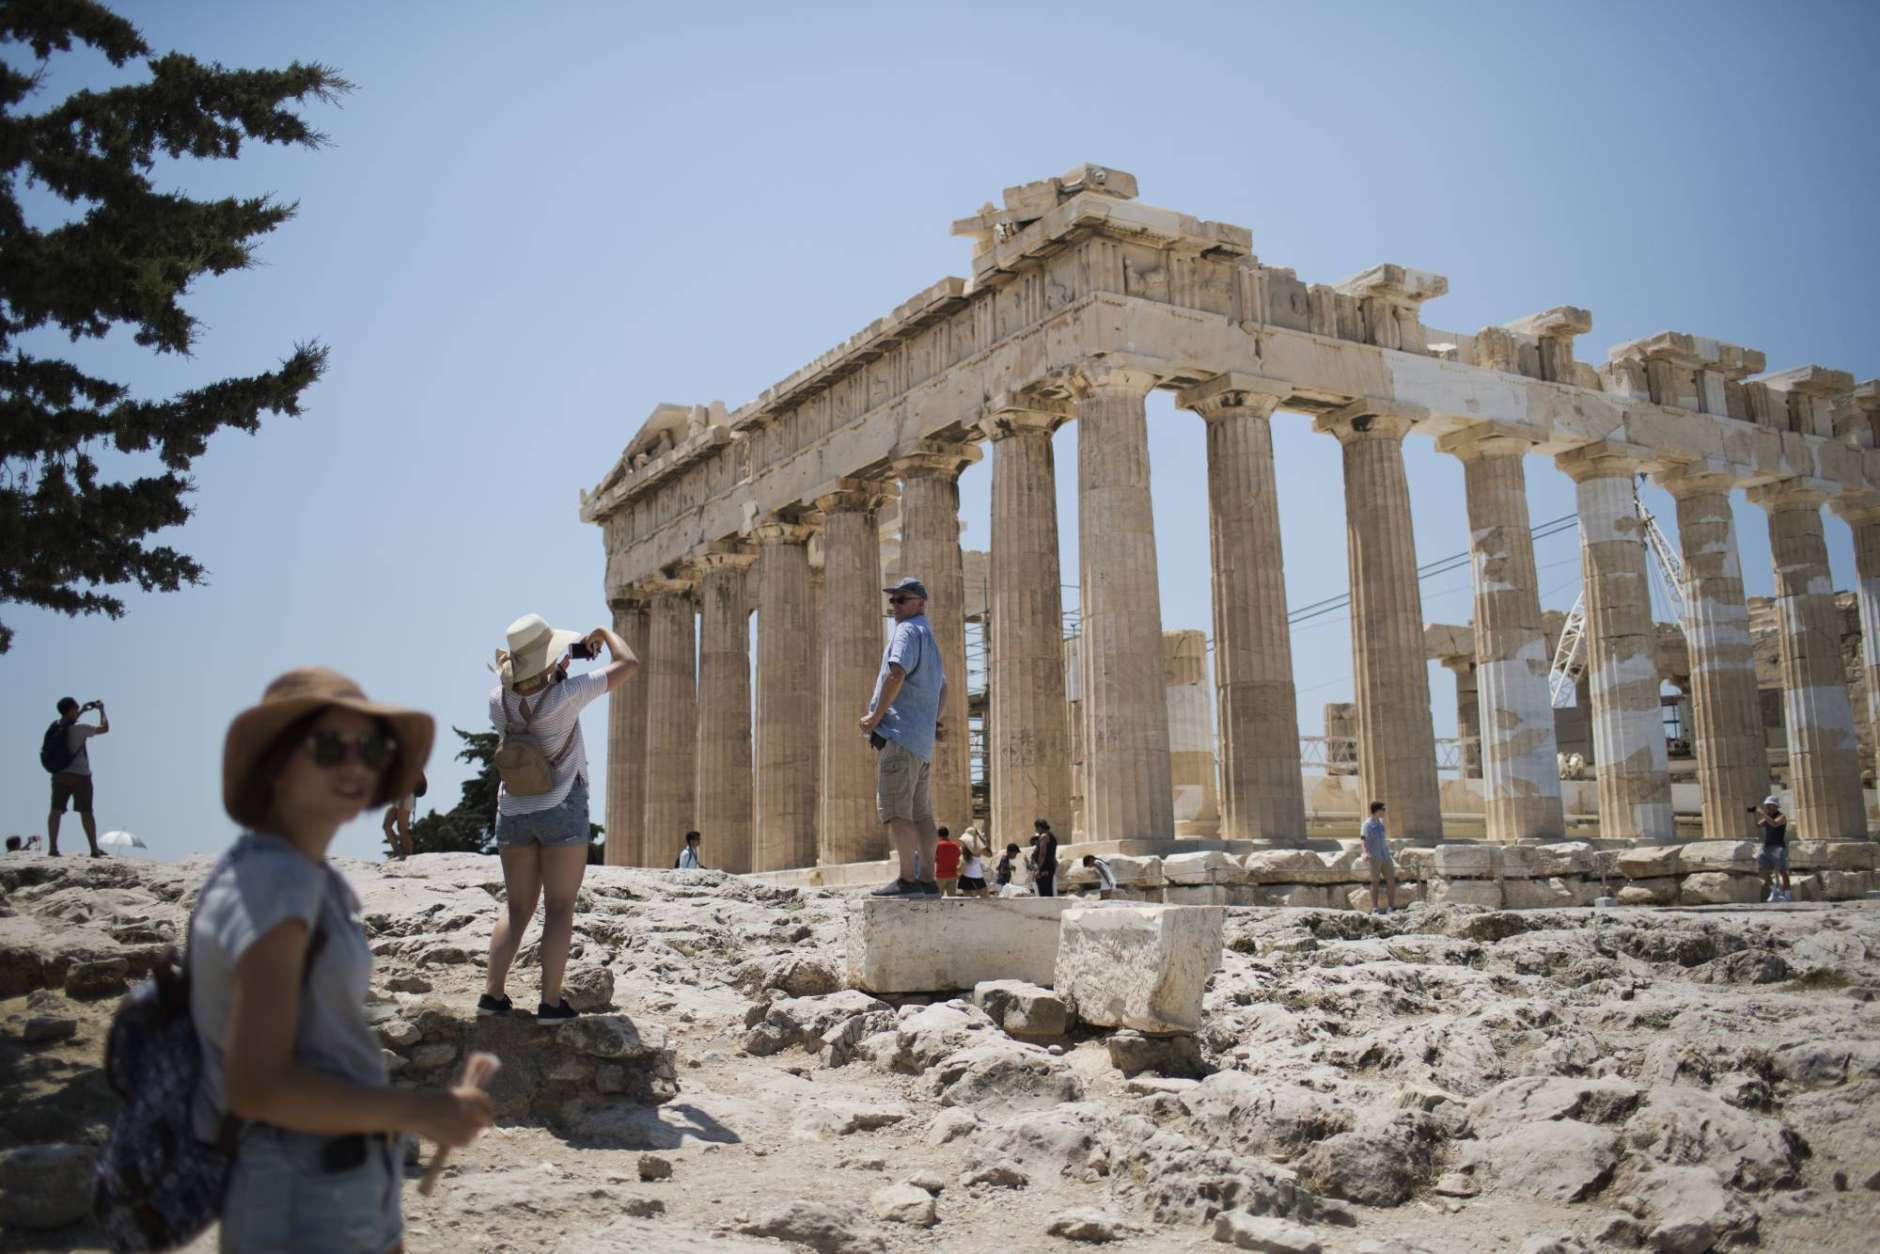 Tourists take pictures in front of the fifth century BC Parthenon temple at the Acropolis hill in Athens, Wednesday, July 12, 2017. Greece's Culture Ministry says that all Greek archaeological sites, including Athens' internationally famed Acropolis, will close during the hottest hours of the day from Wednesday, due to a predicted heat wave. (AP Photo/Petros Giannakouris)